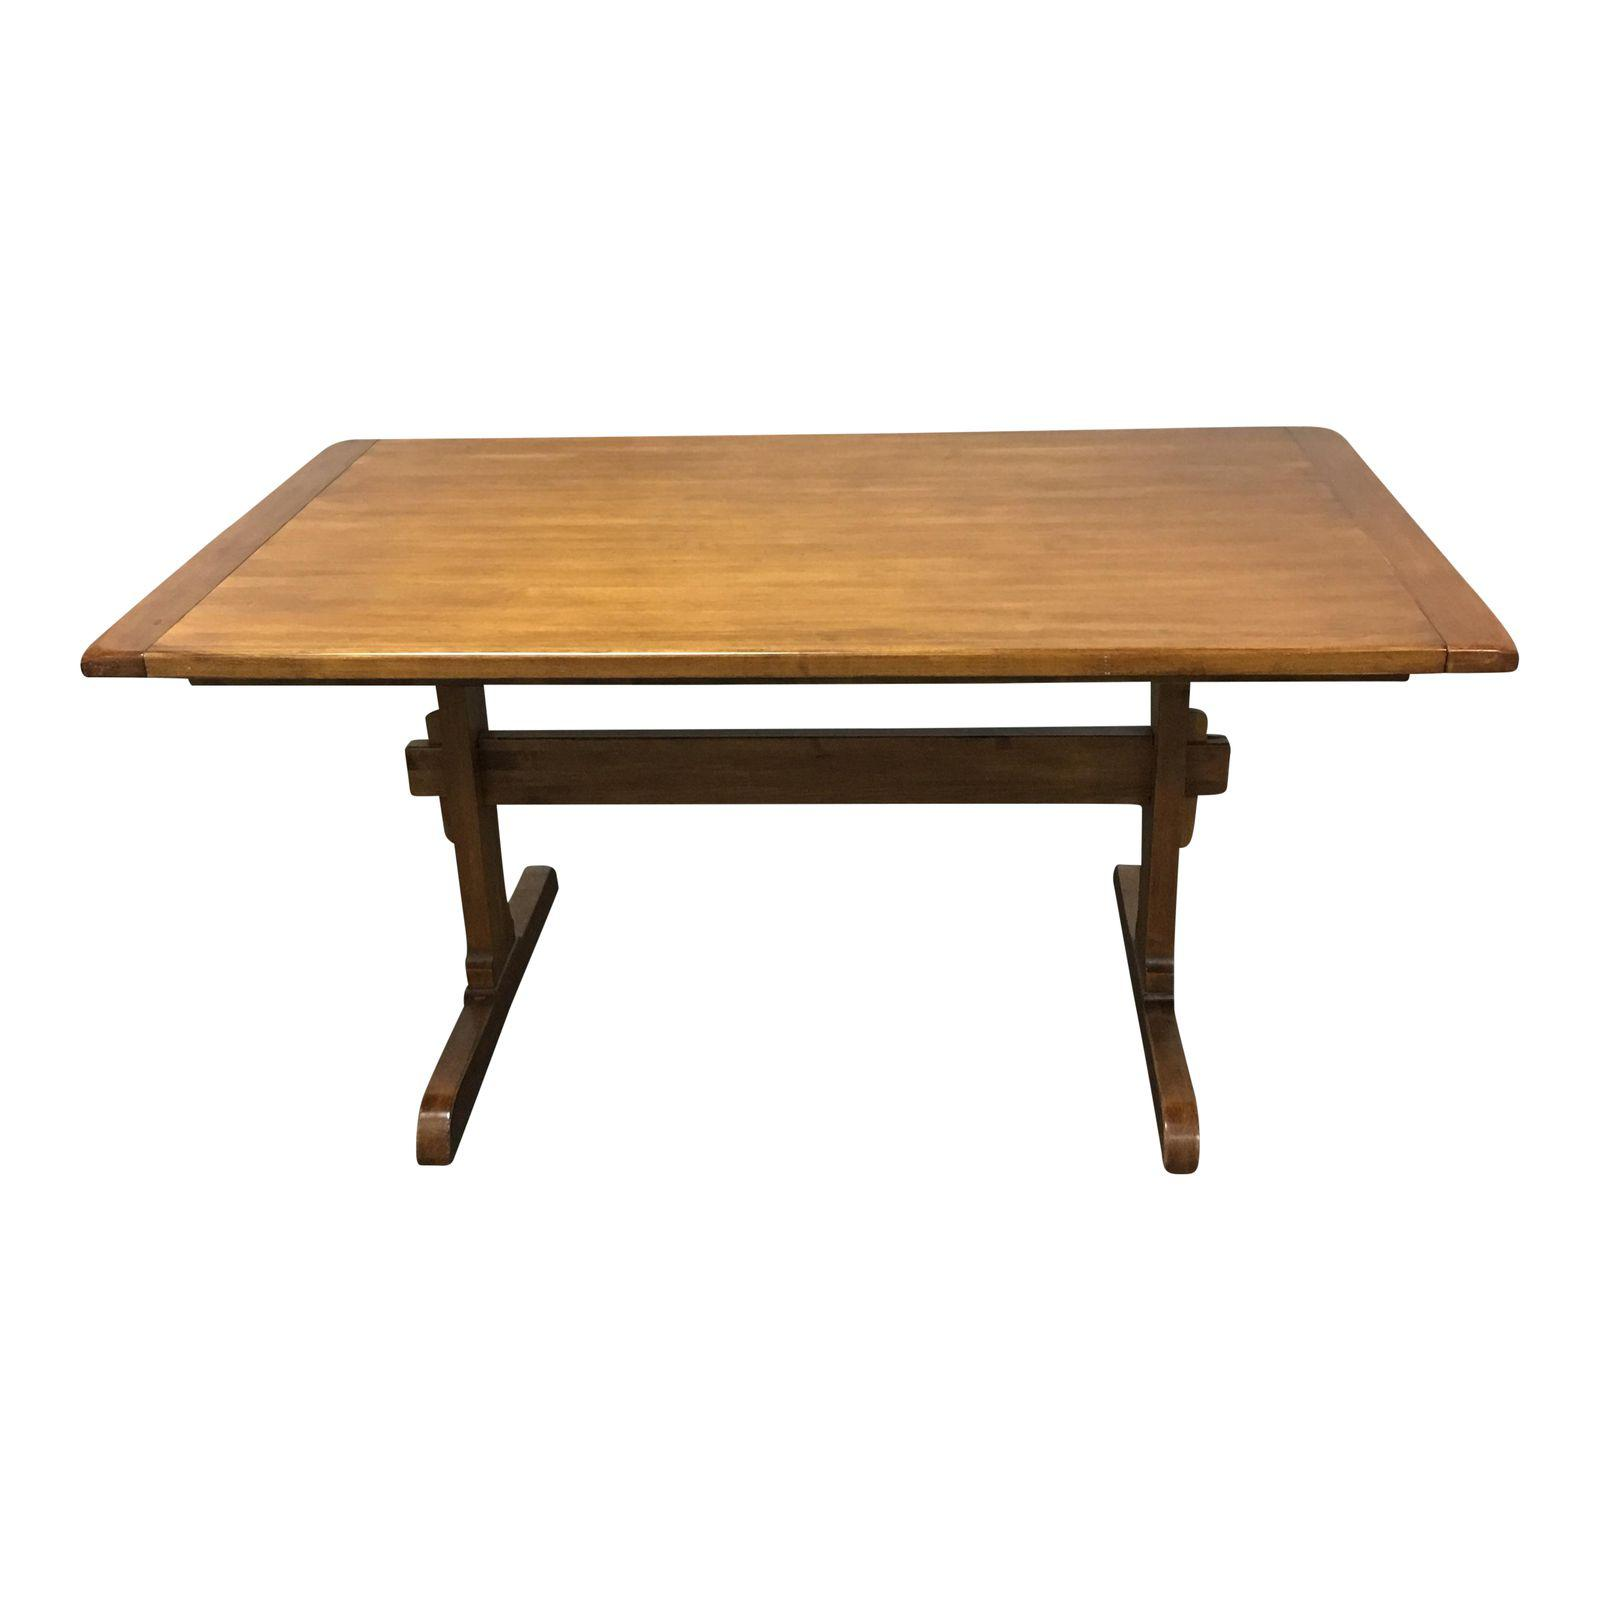 Ethan Allen Solid Maple Extension Dining Table Design Plus Gallery